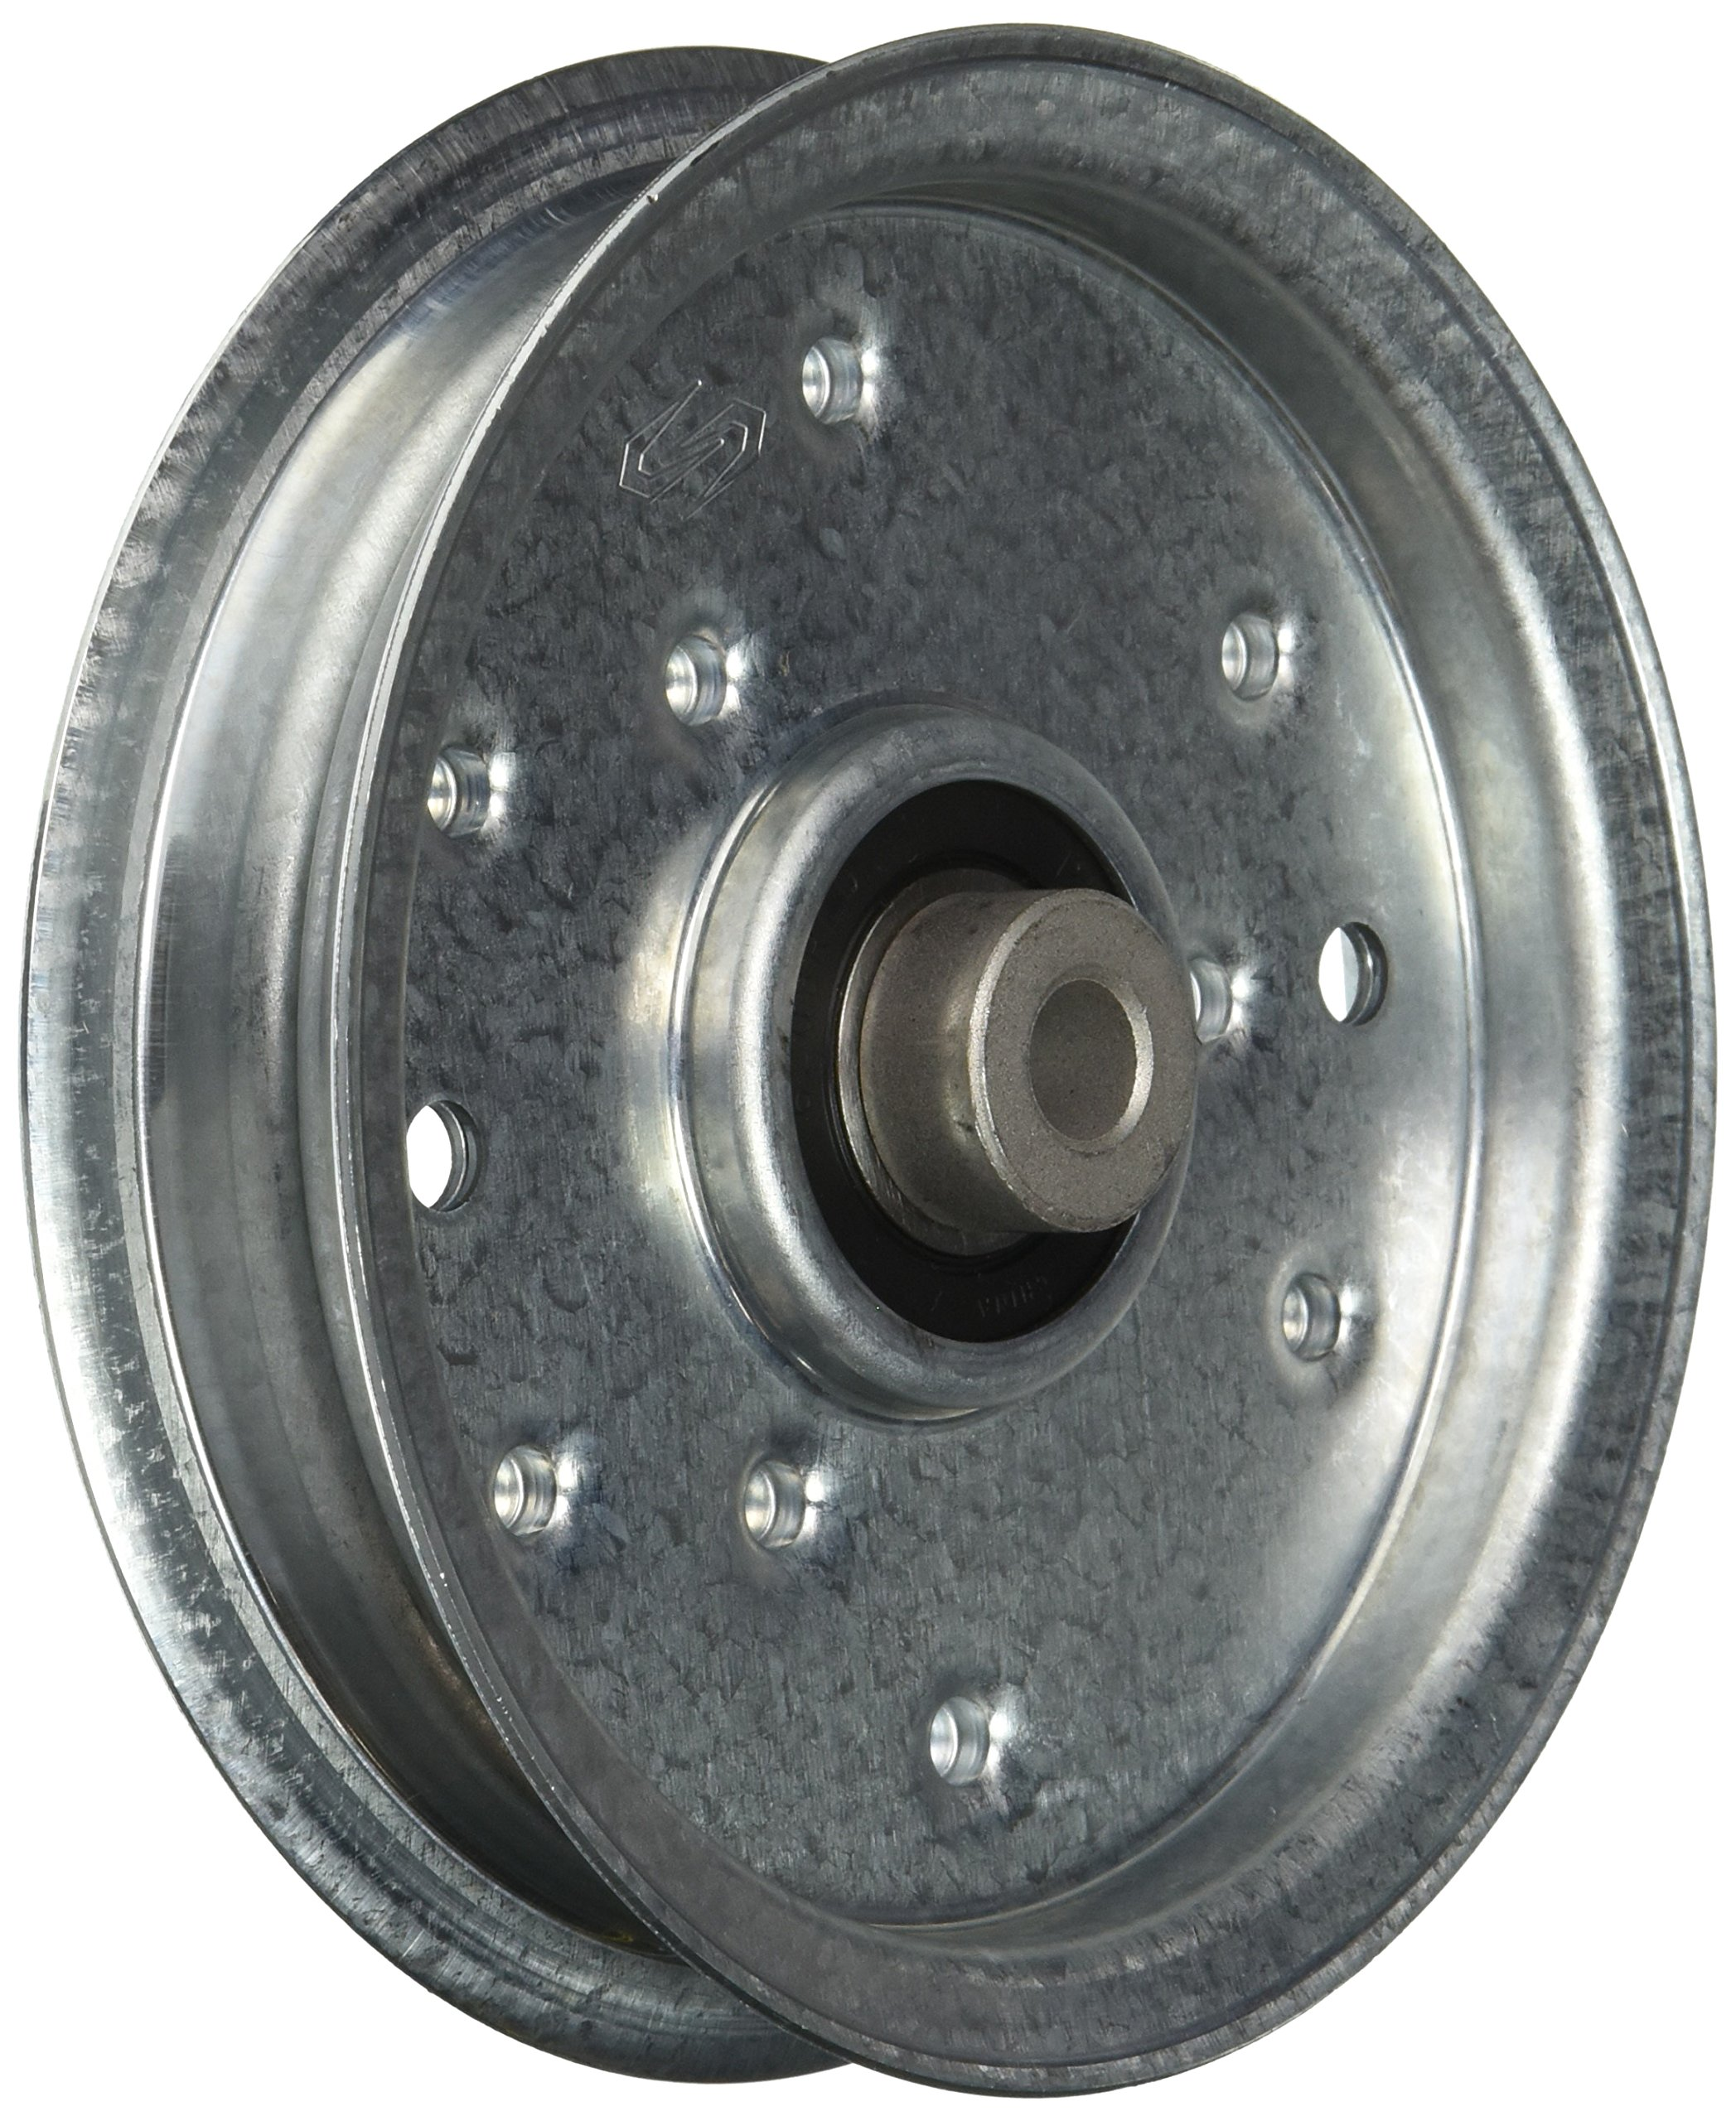 MaxPower 12675 Flat Idler Pulley for MTD/Cub Cadet/Troy-Bilt Replaces 956-04129, 753-08171, 756-04129, 75604129B, & 75604129C by Maxpower